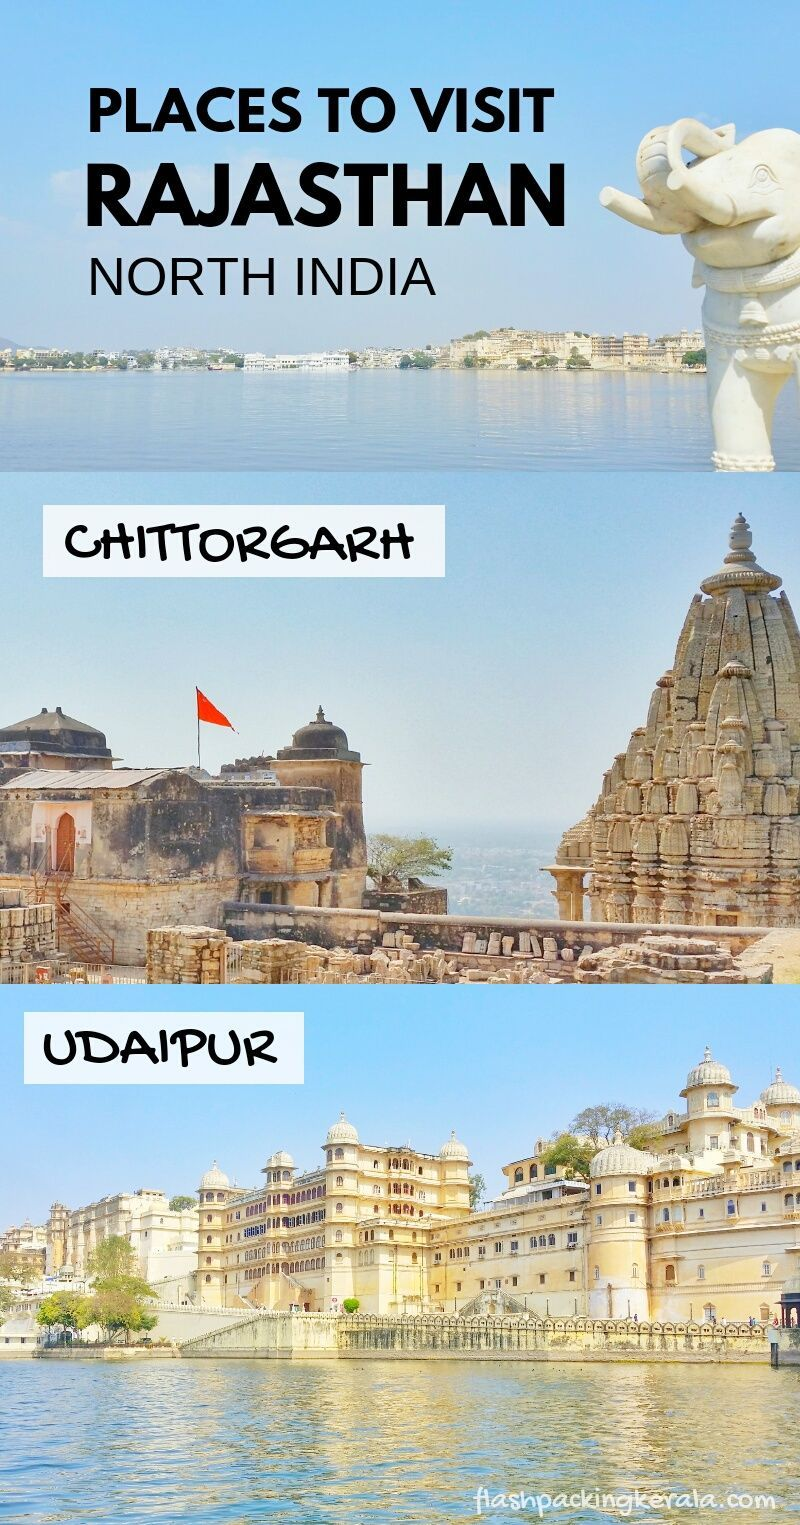 Udaipur to bus or train? Day trip from Udaipur